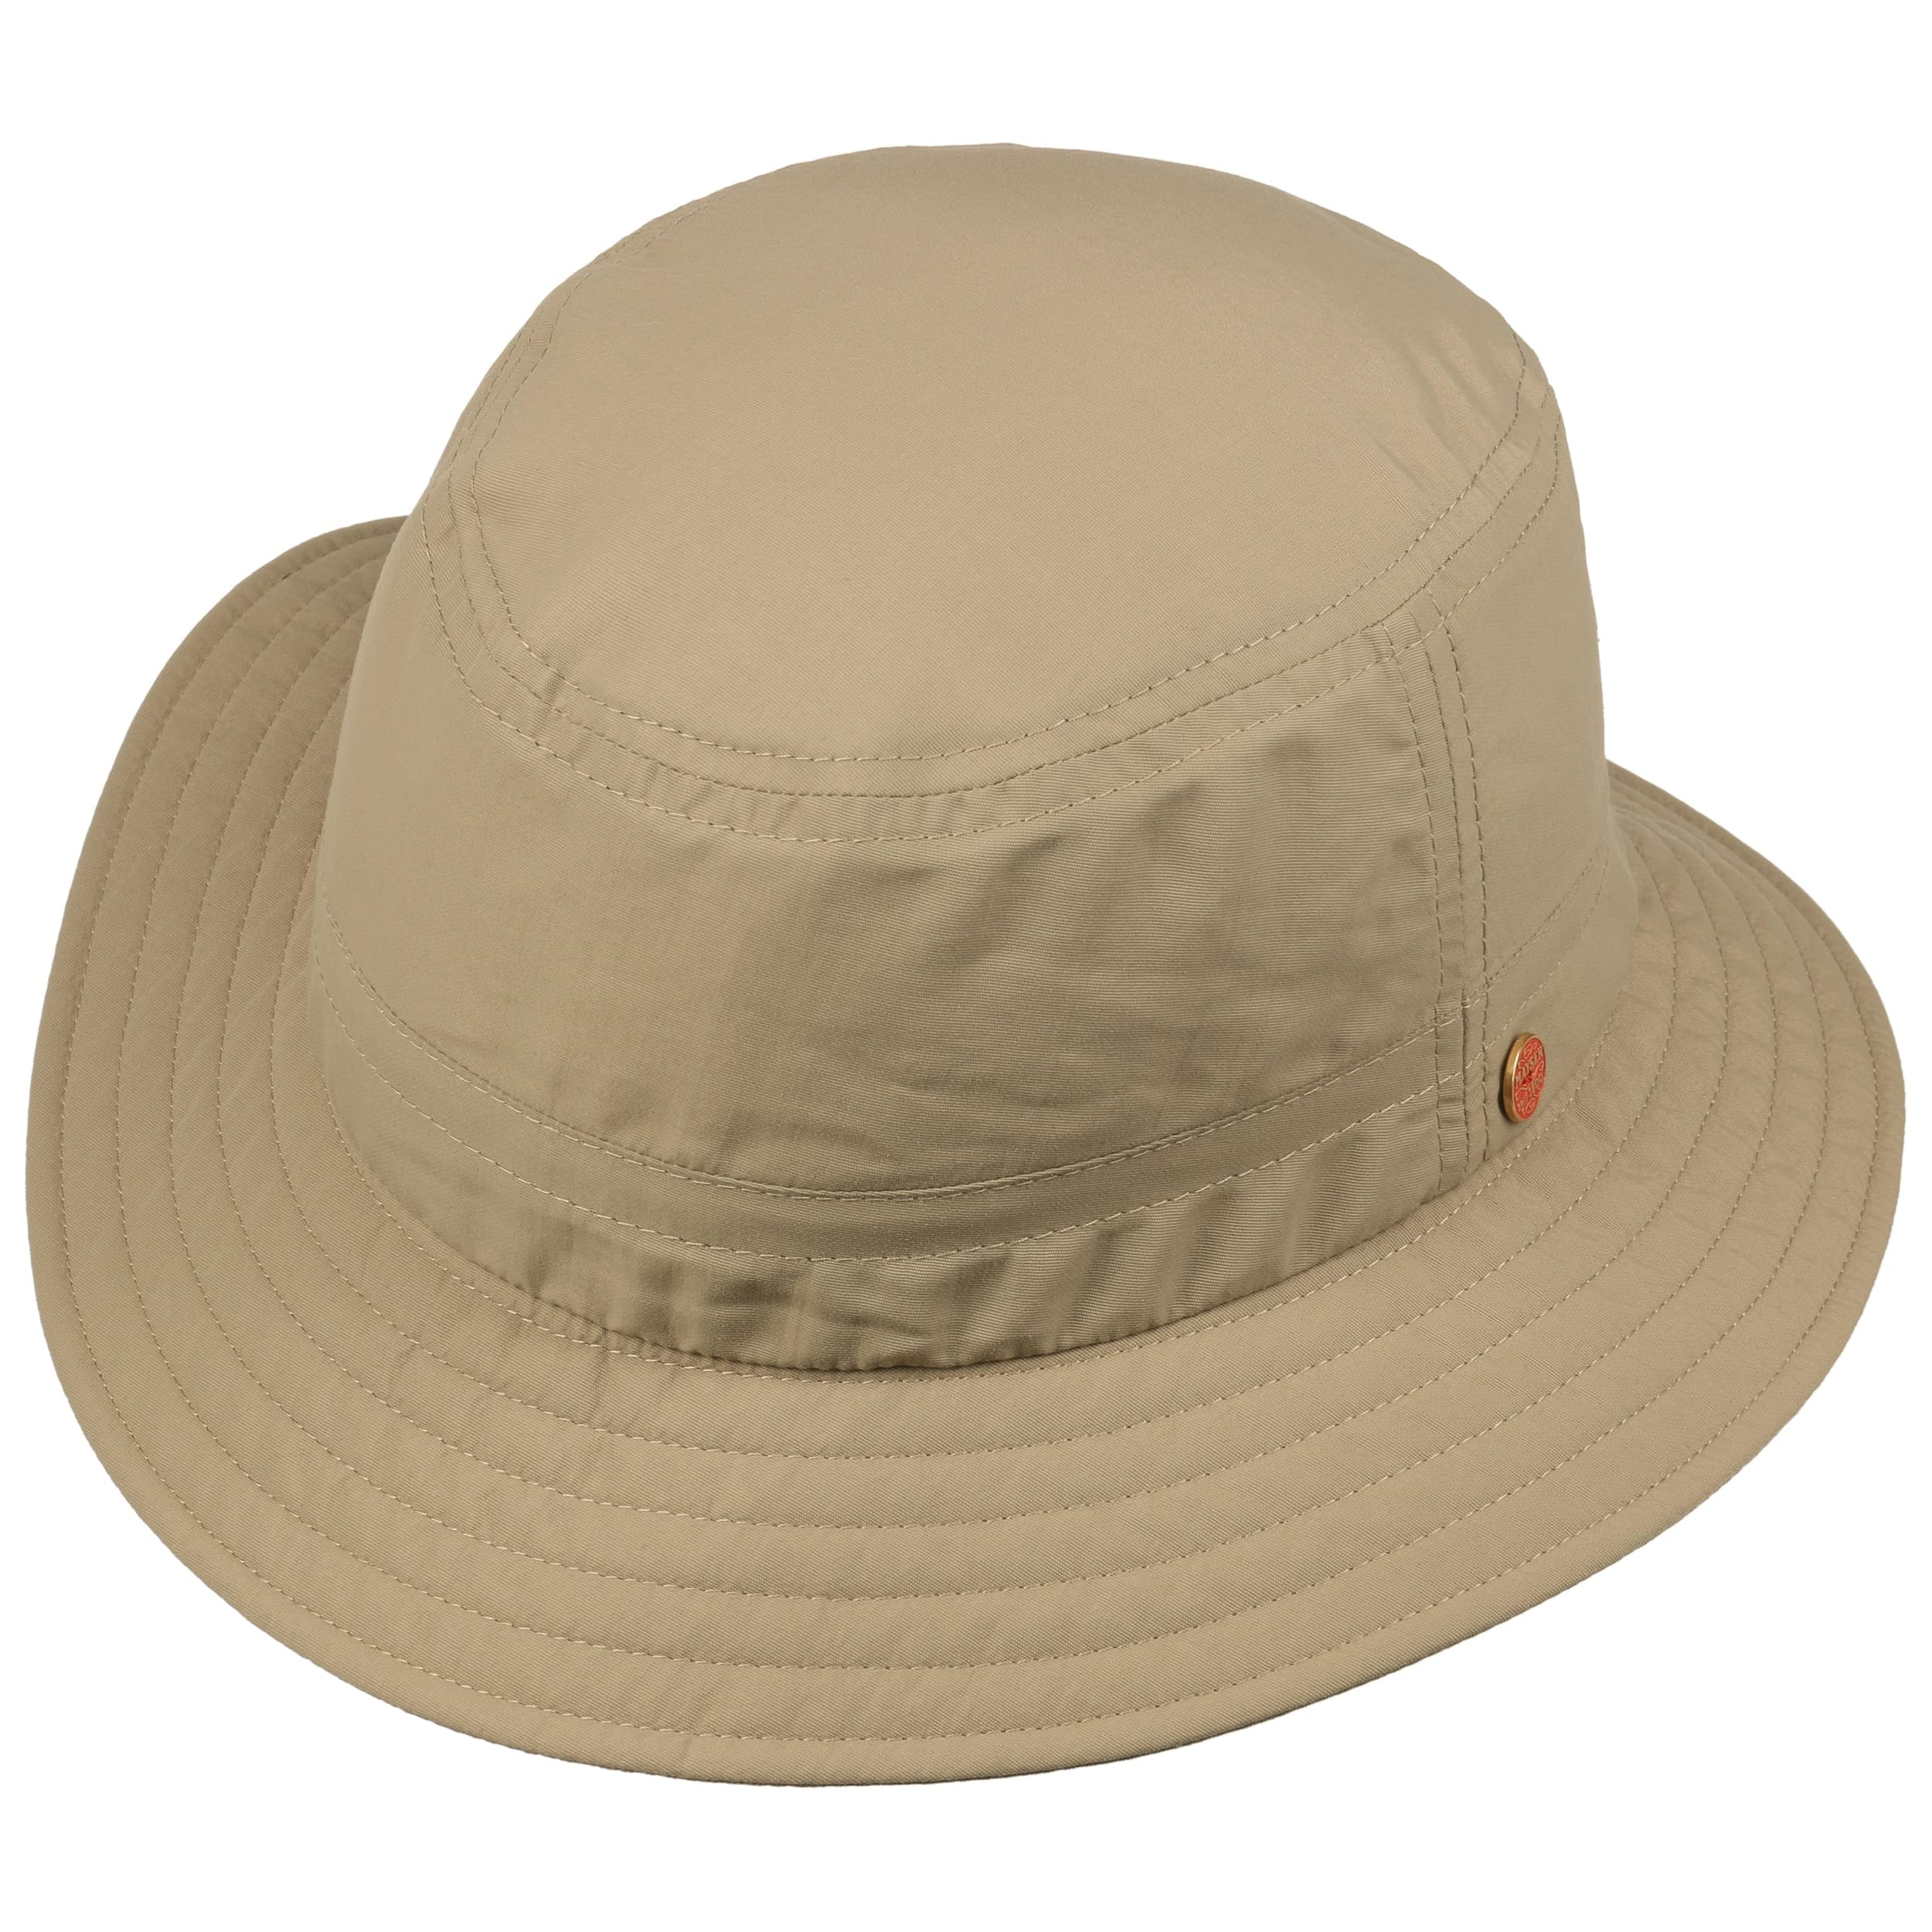 7c430f1ab3ee ... UV Protection Sun Hat by Mayser - dark beige 1 ...